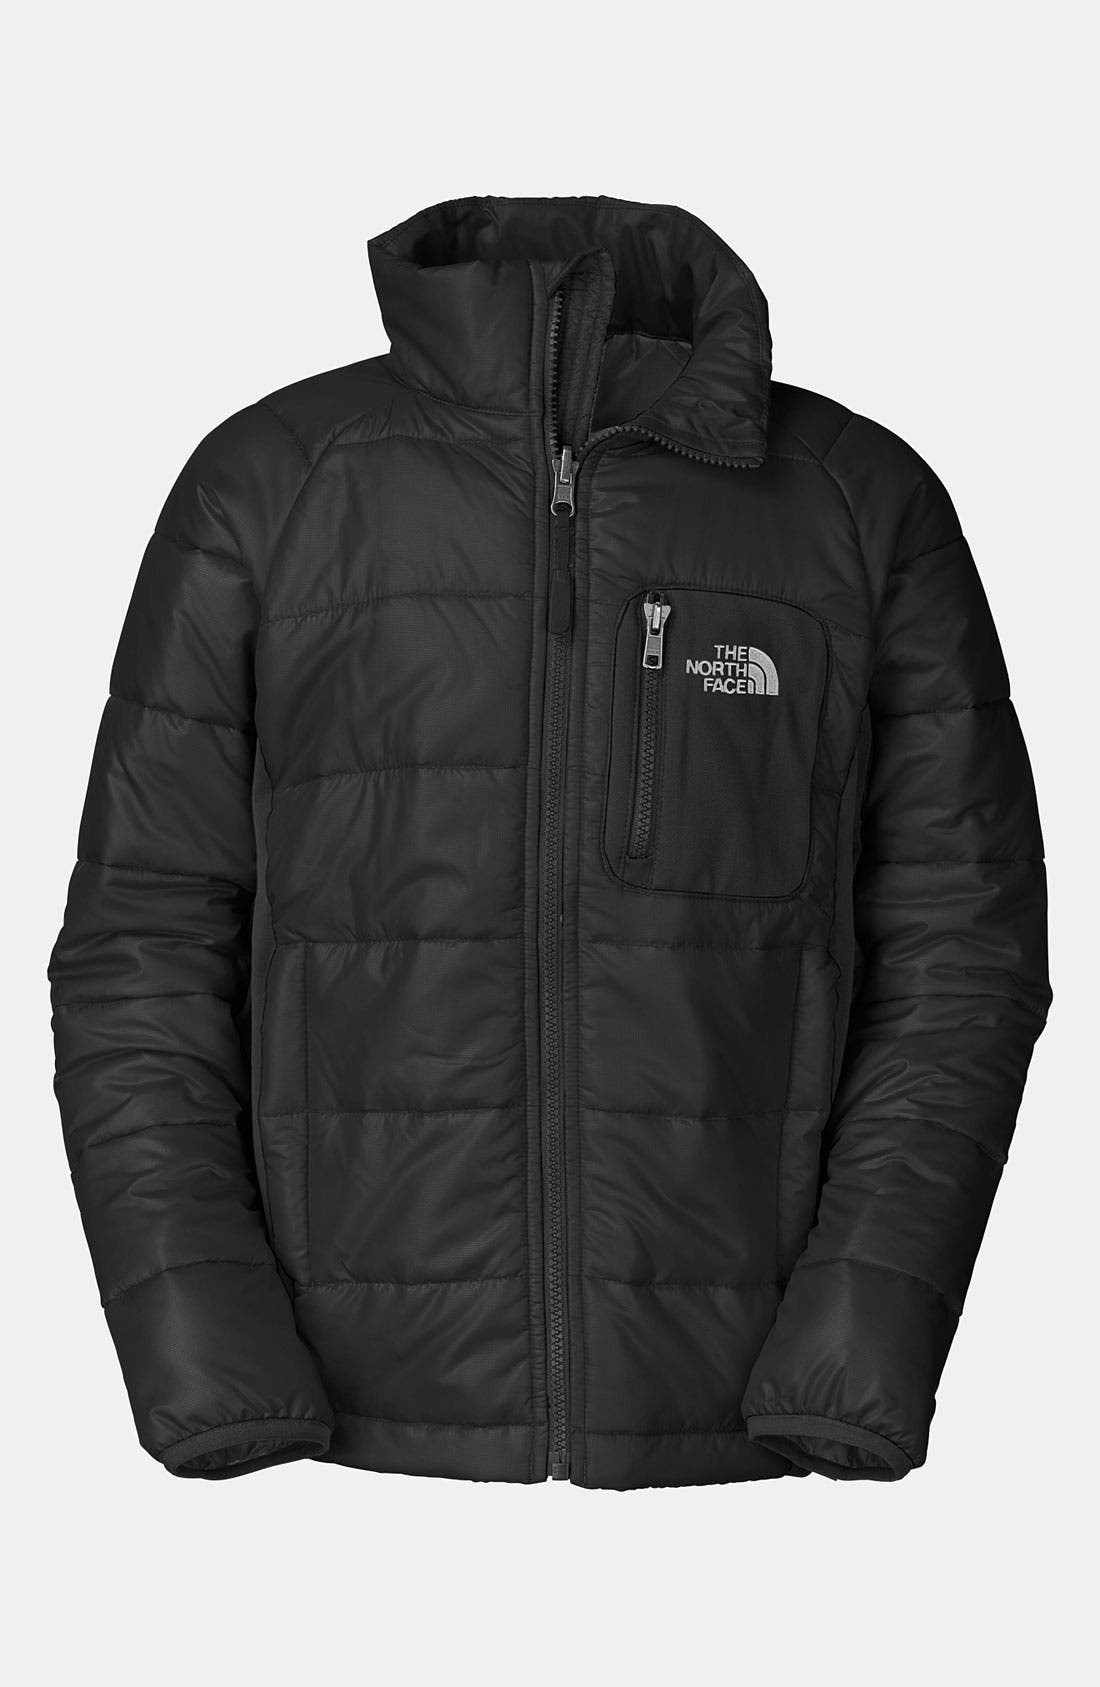 Alternate Image 1 Selected - The North Face 'Sibrian' Jacket (Little Boys)